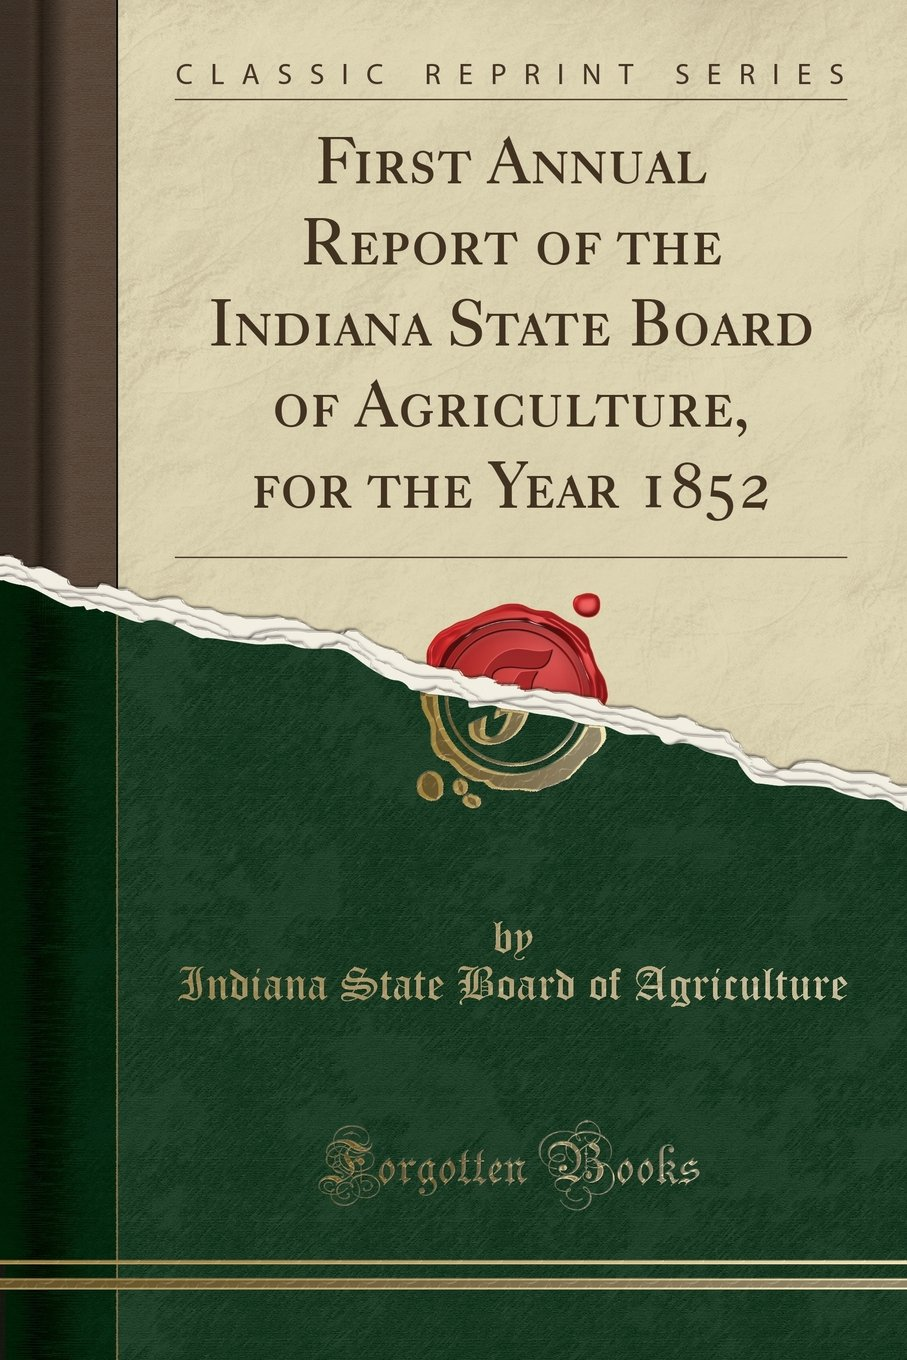 First Annual Report of the Indiana State Board of Agriculture, for the Year 1852 (Classic Reprint) ebook